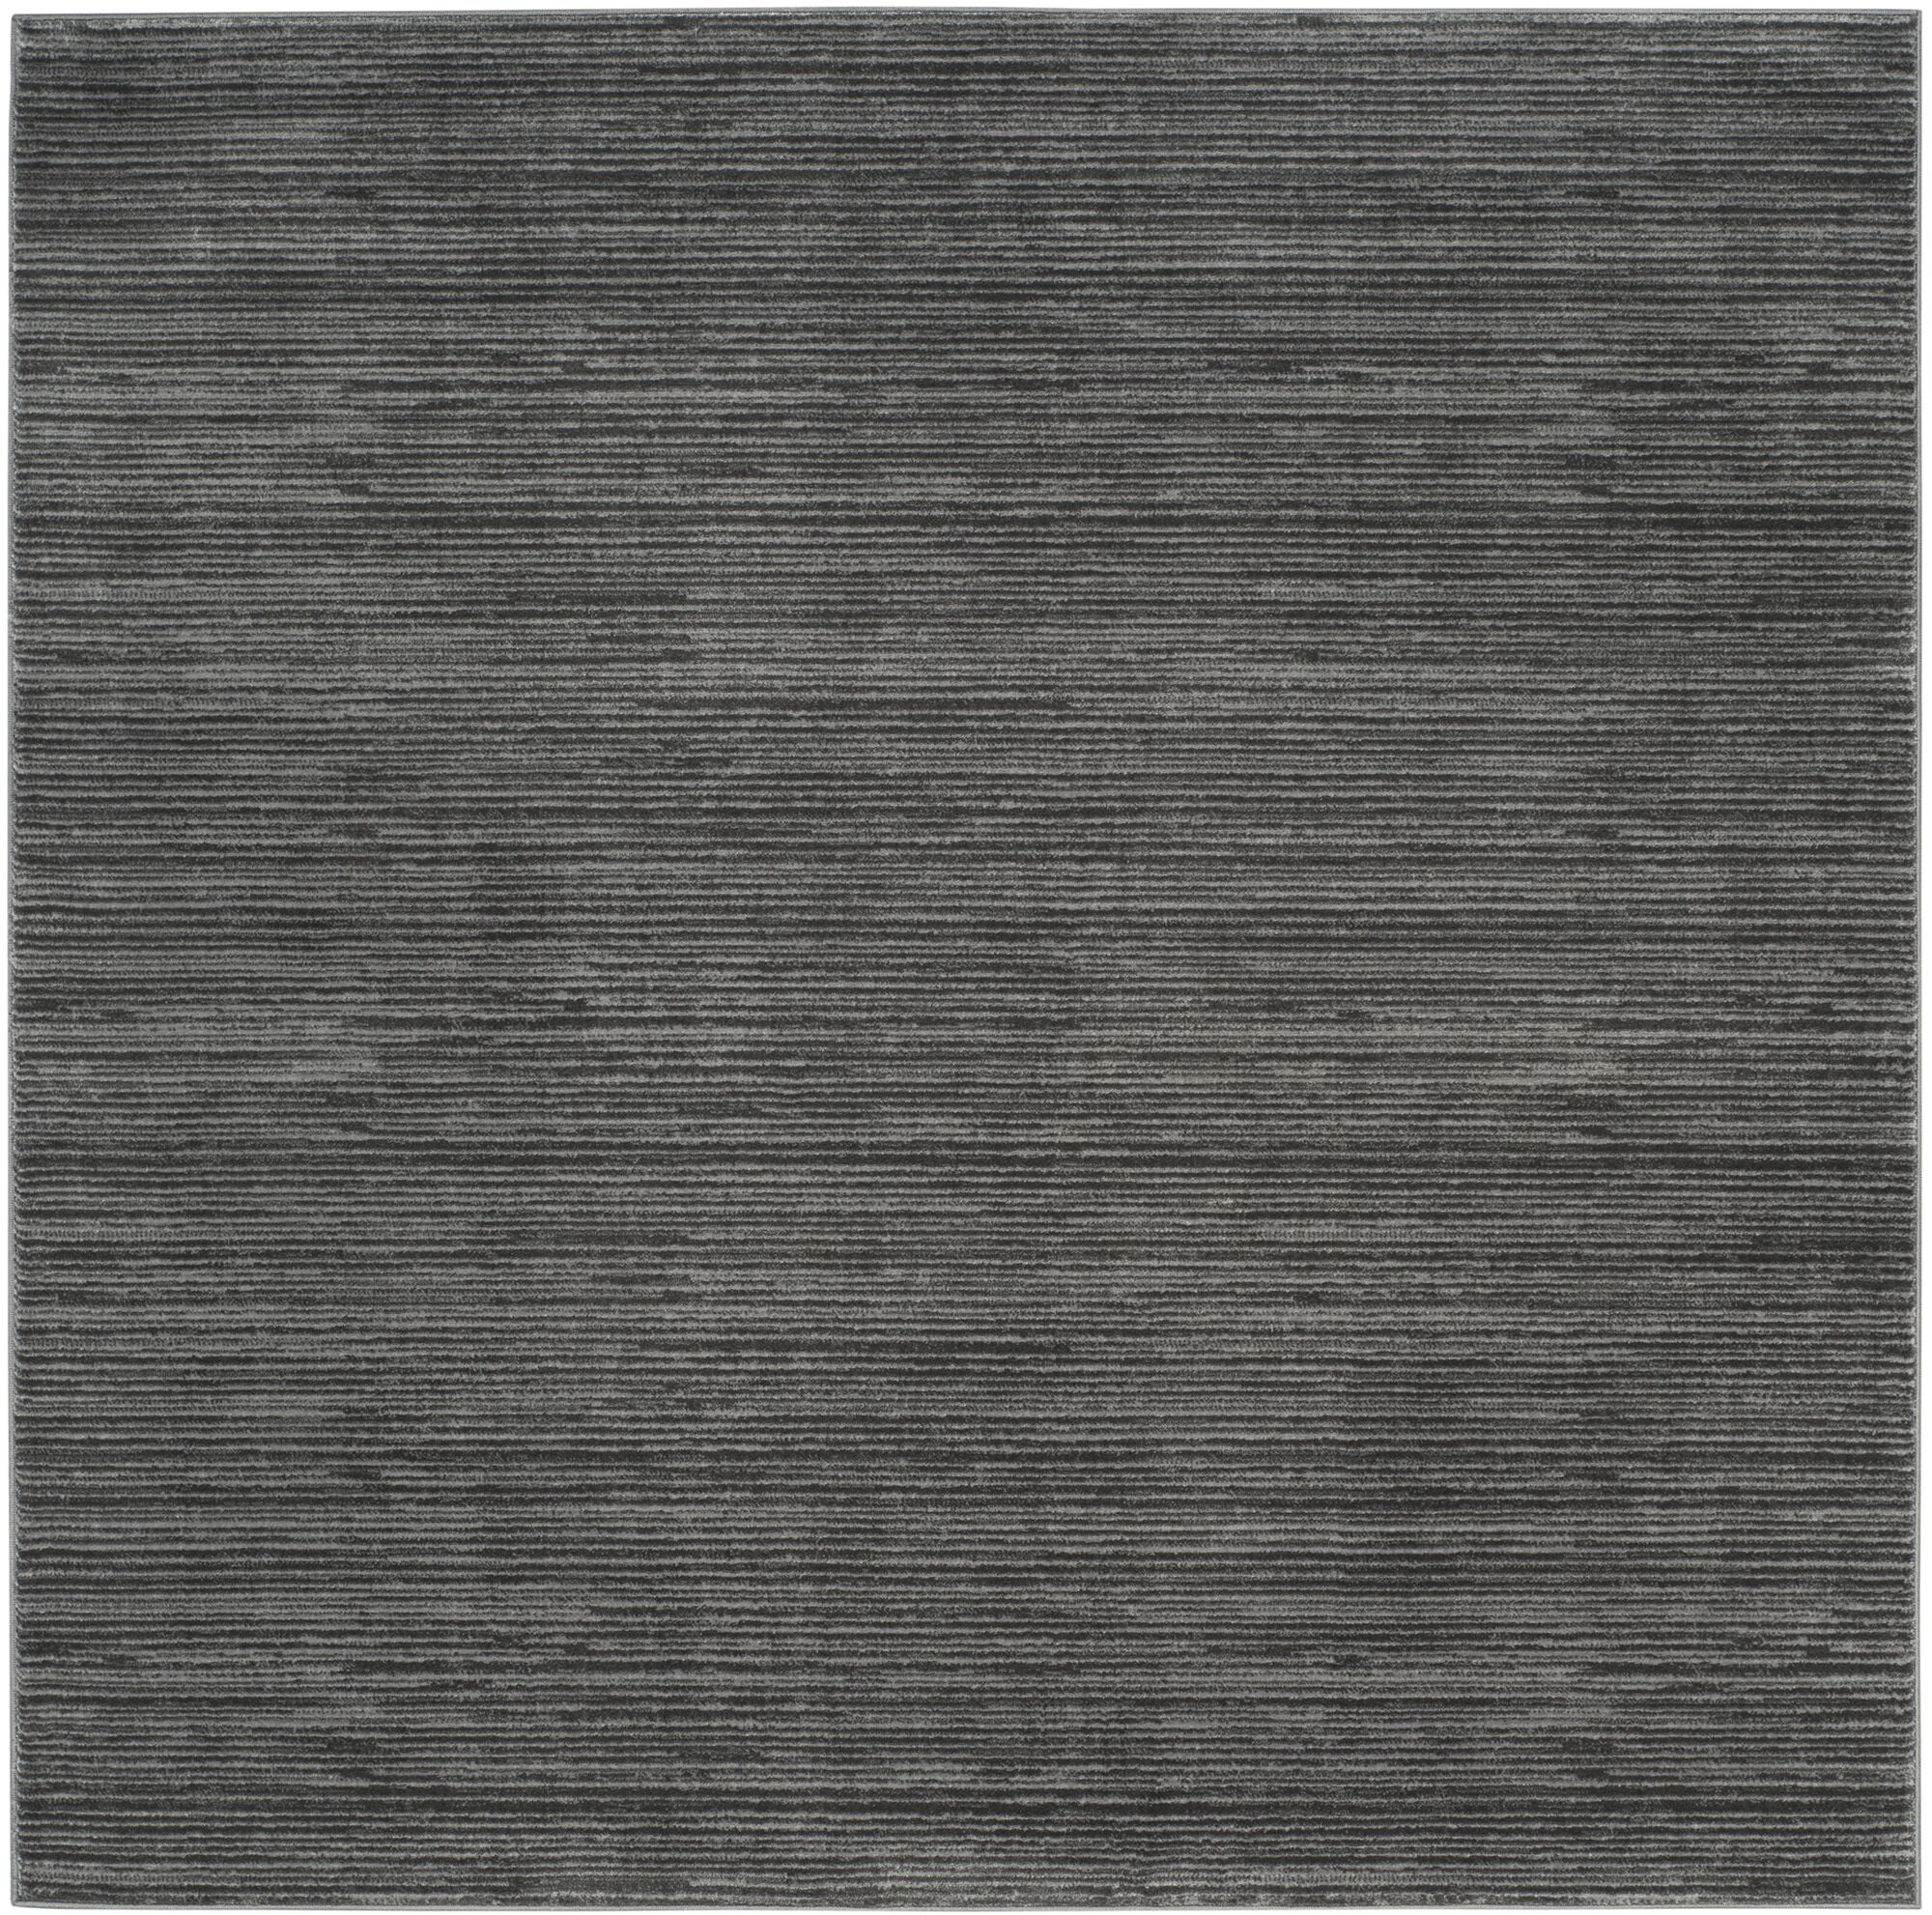 Harloe Gray Area Rug Rug Size: Square 6'7